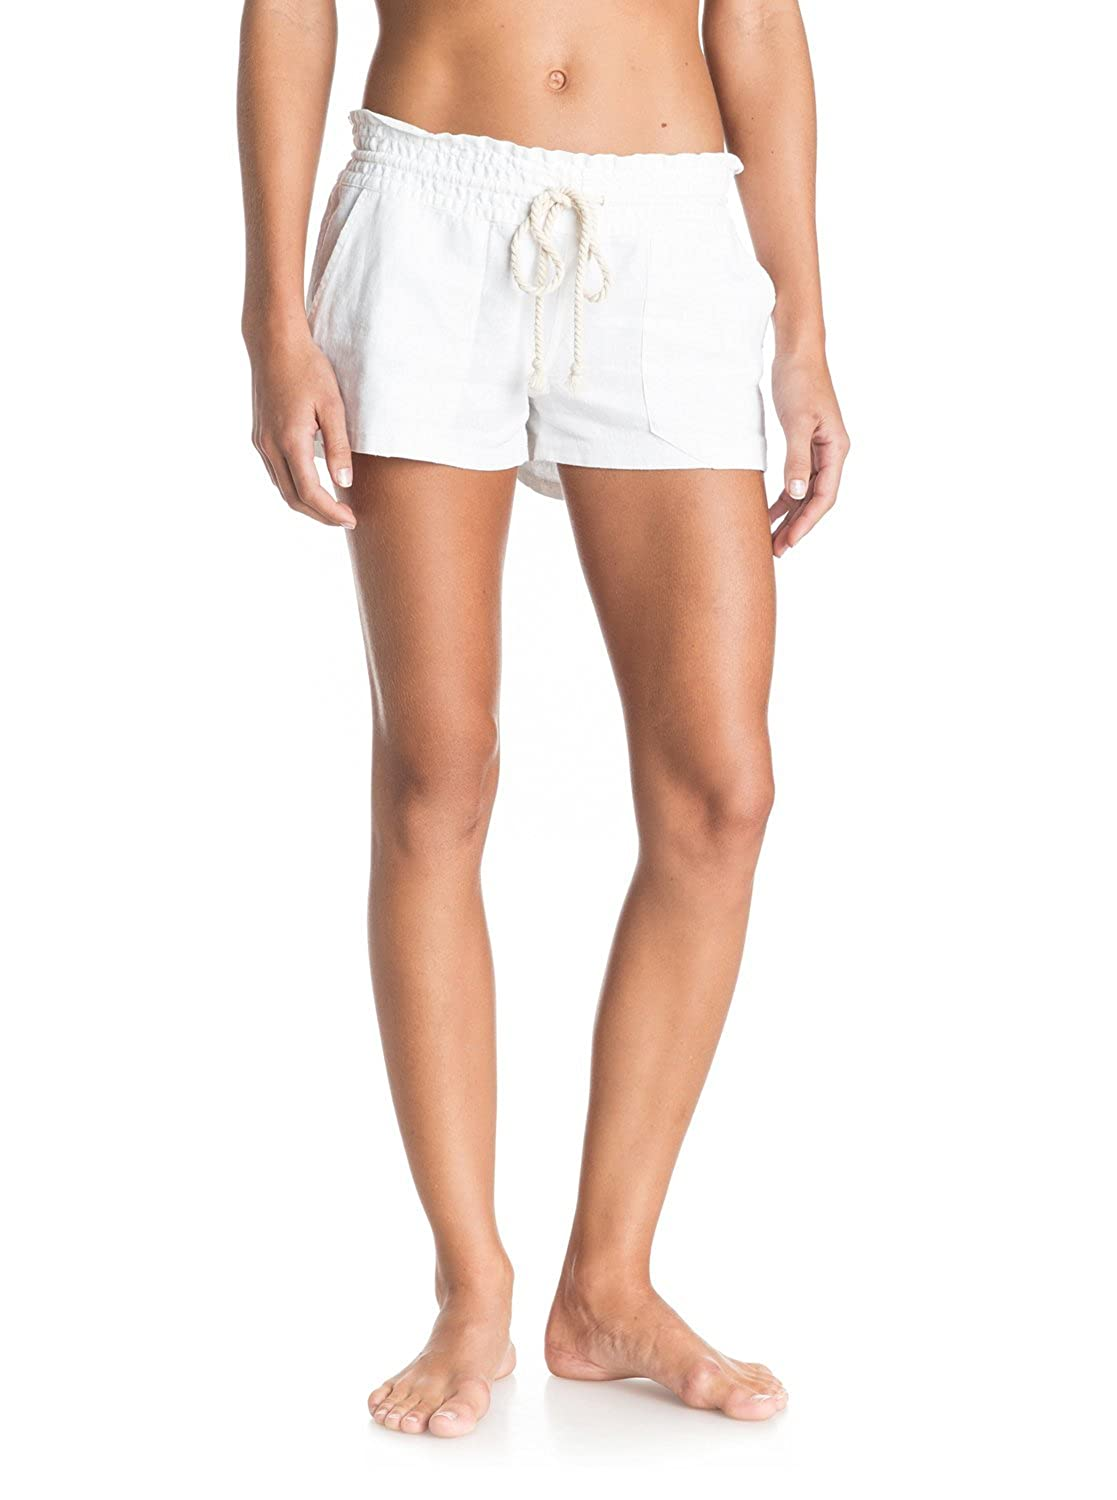 Roxy Women's Oceanside Beach Shorts & Travel Sunscreeen Spray (15 SPF) Bundle